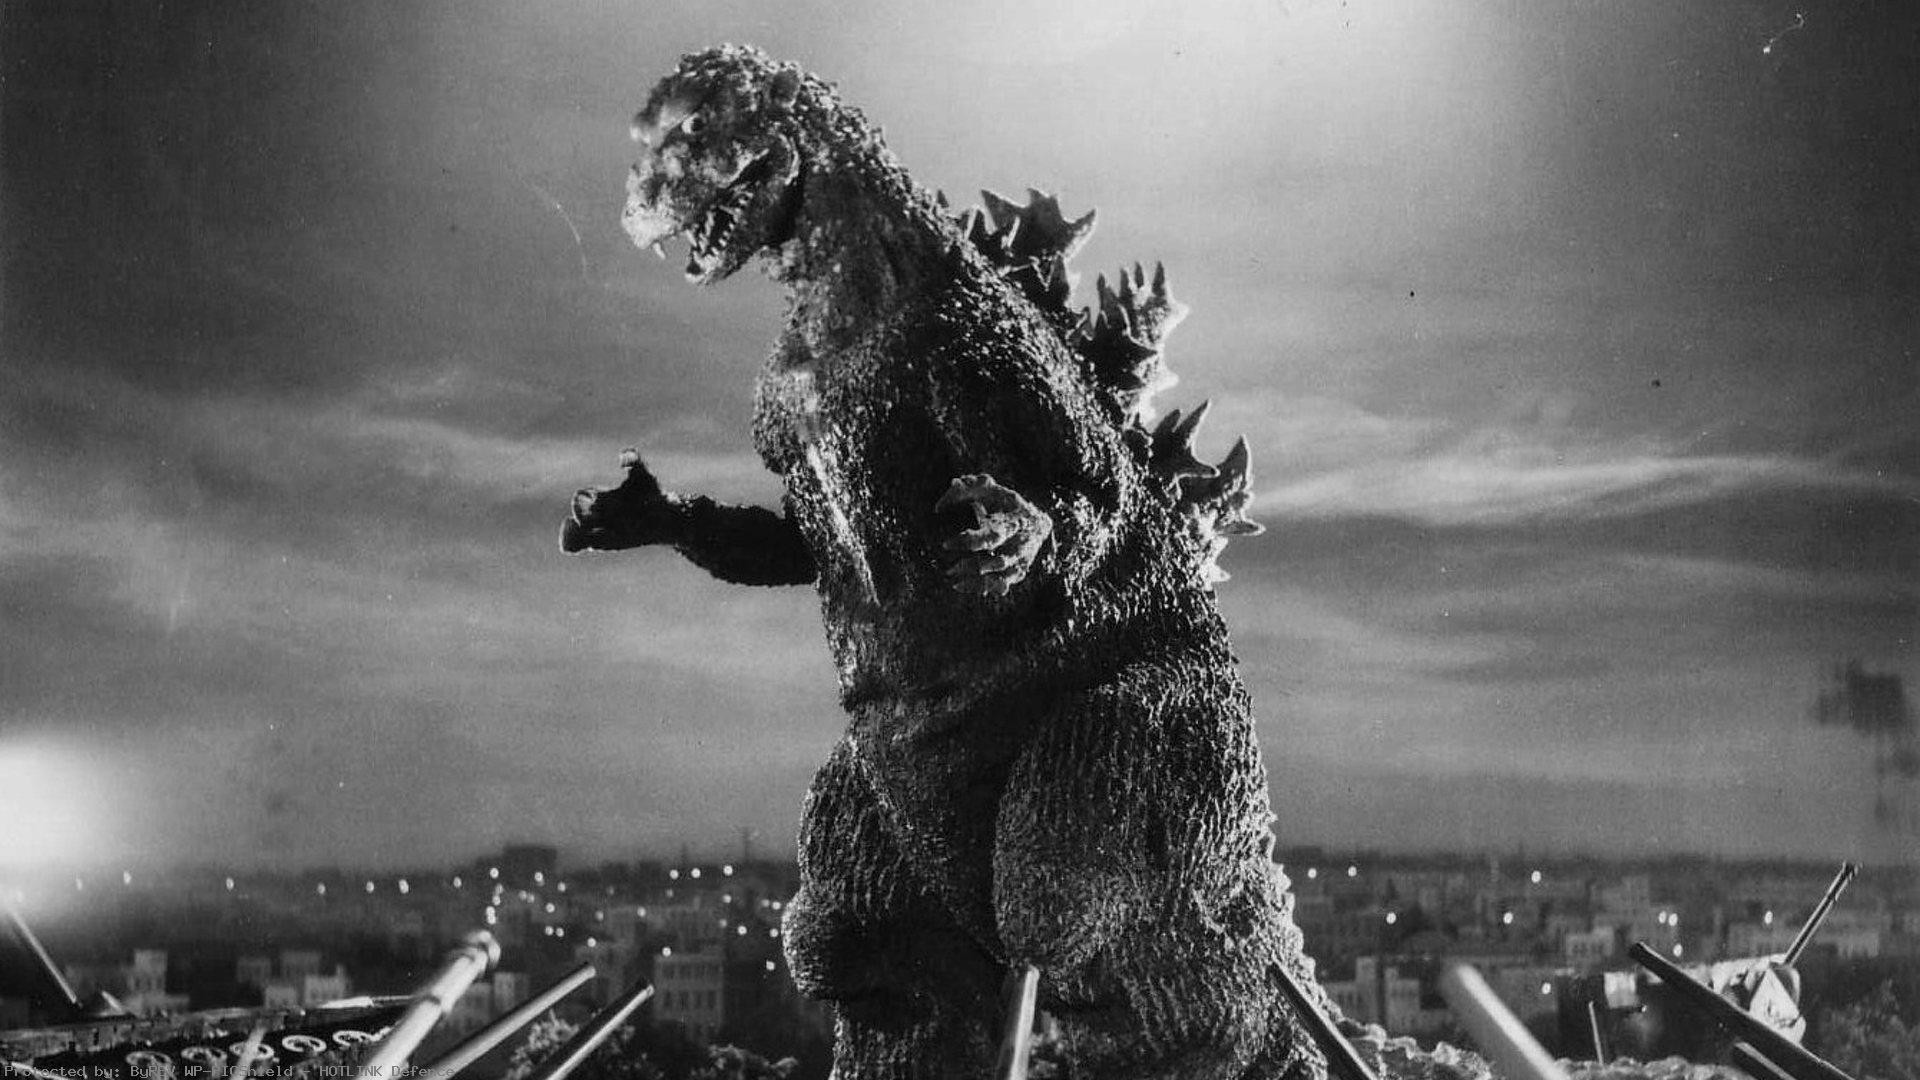 Years-of-Godzilla-A-History-and-Critique-of-